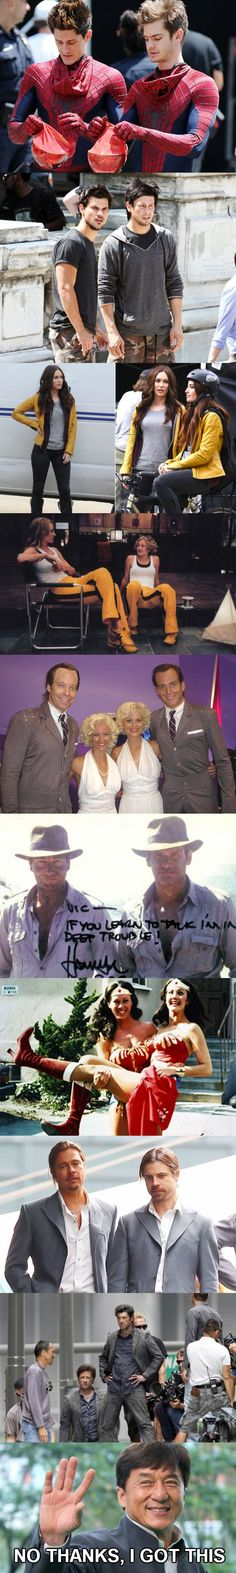 Celebs With Their Stunt Doubles http://ibeebz.com